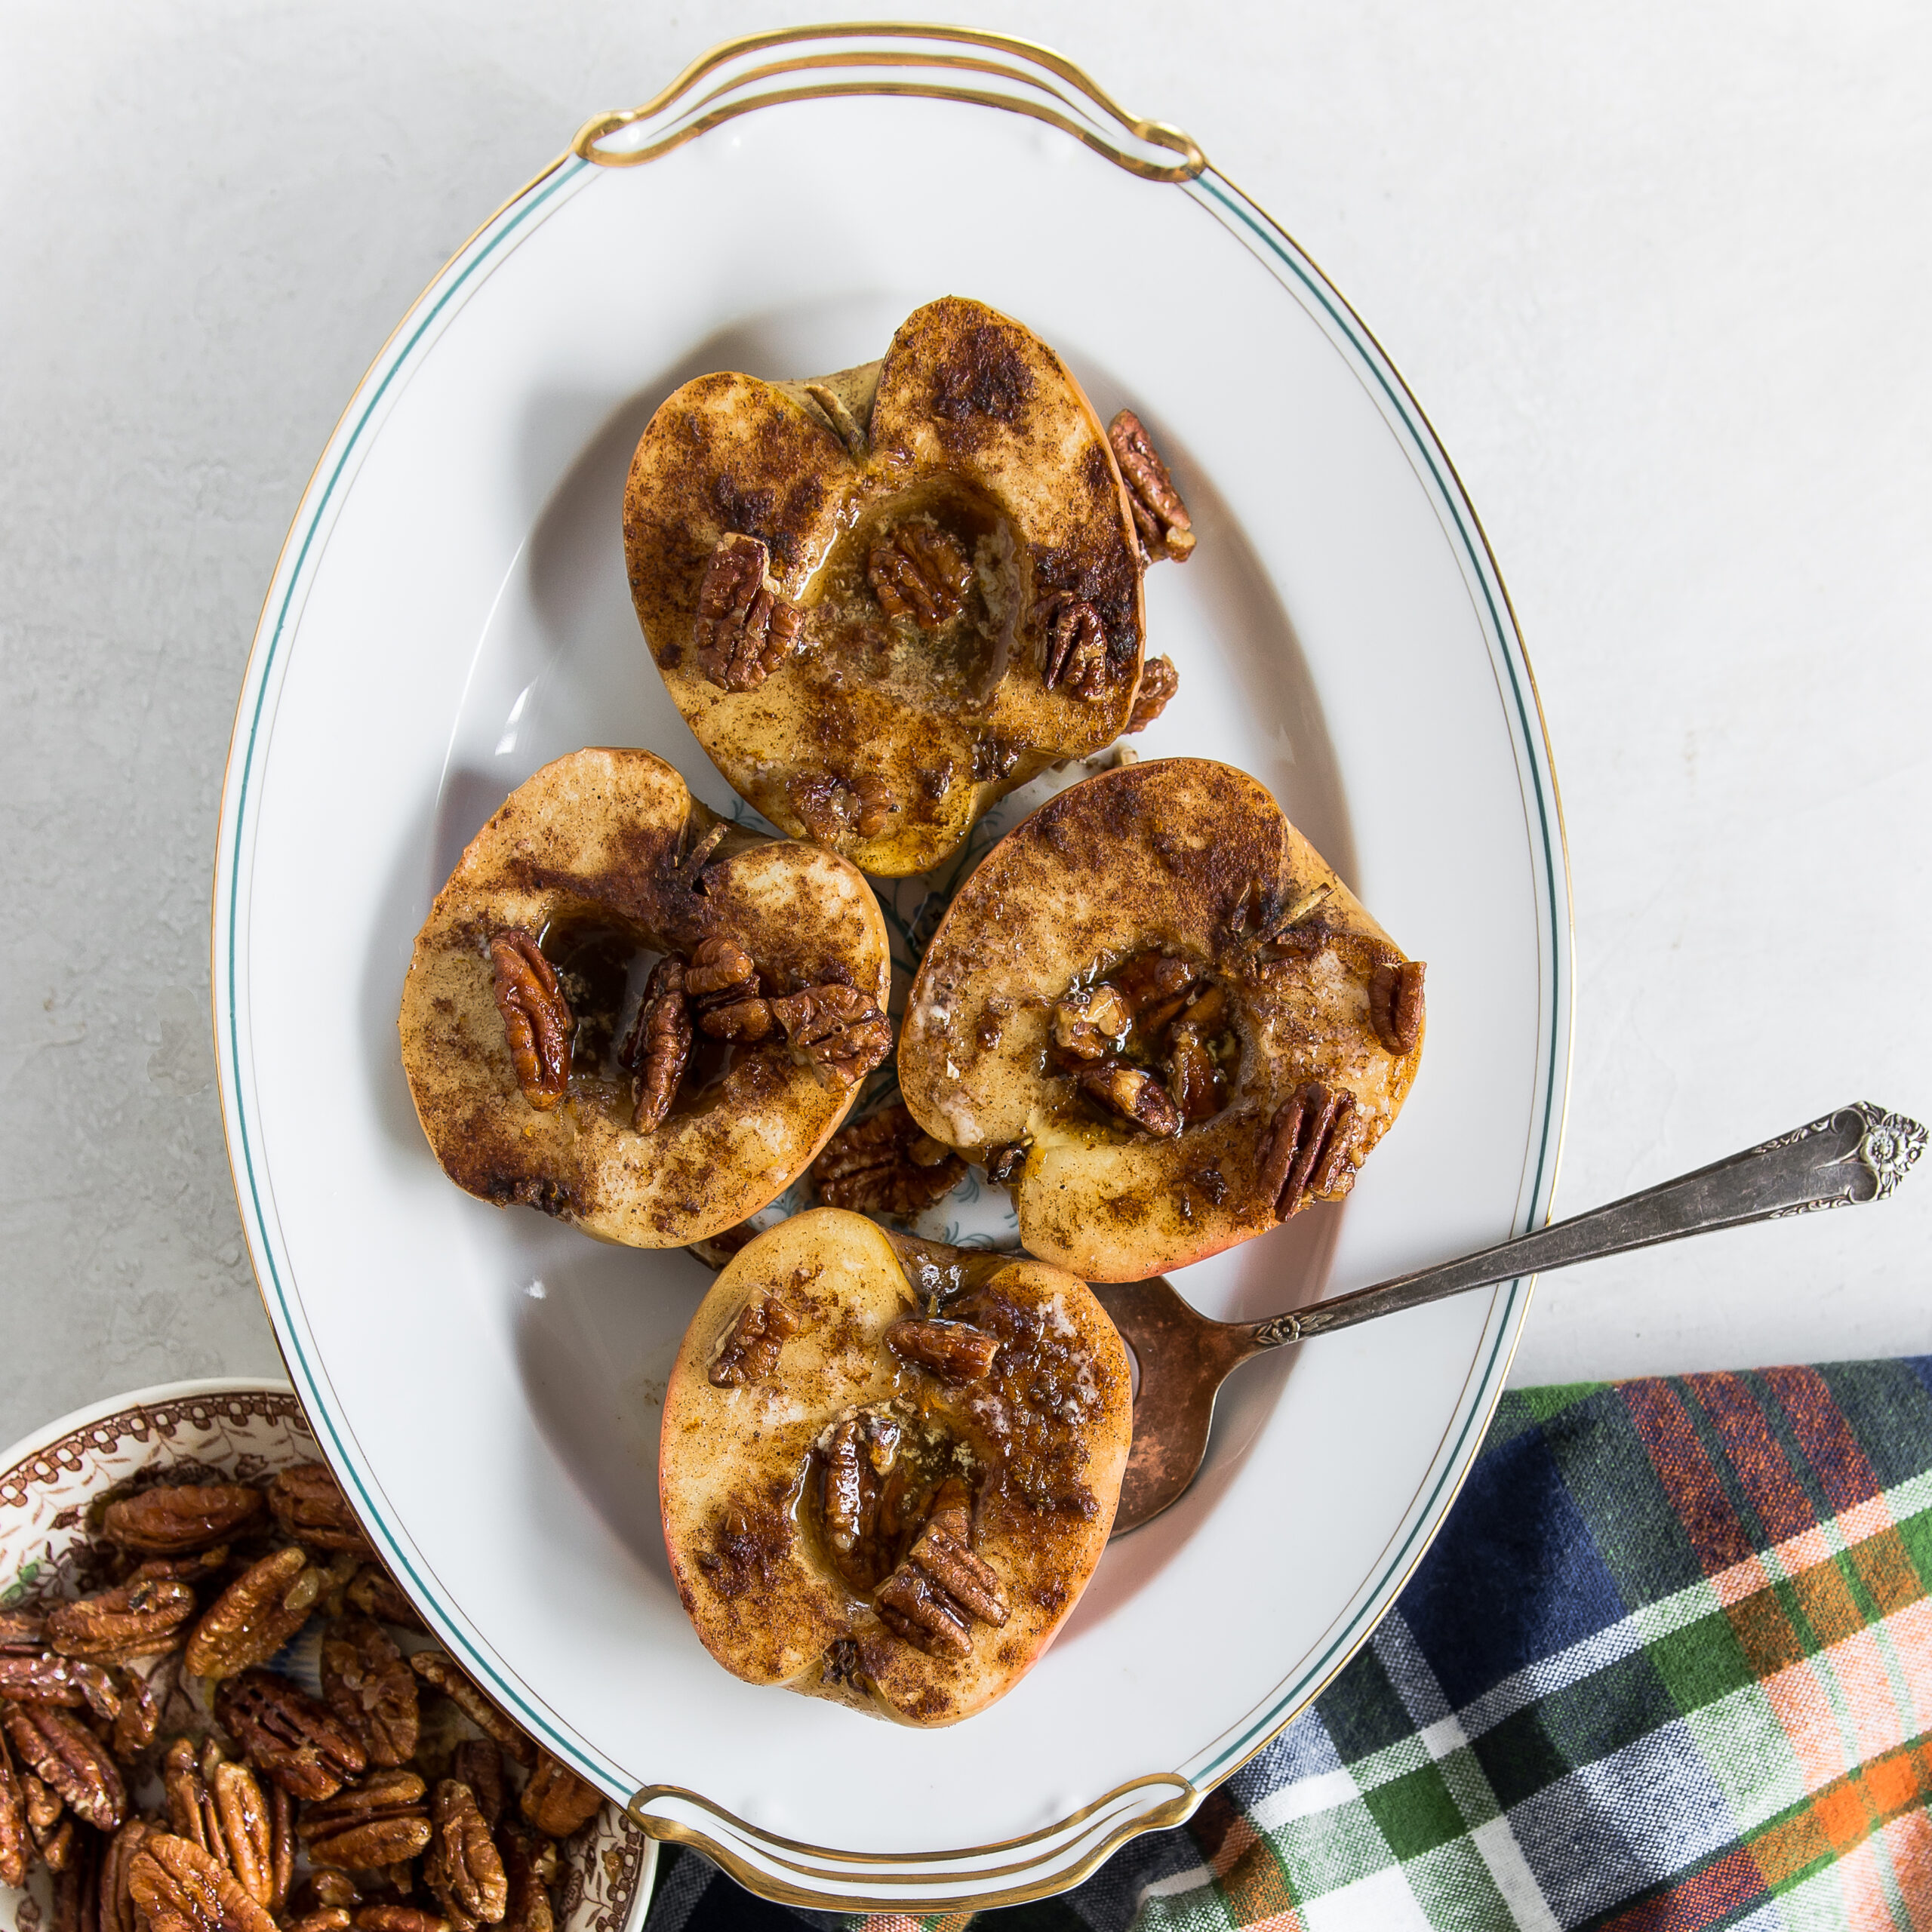 Spiced Brown Sugar Baked Apples 1×1 (1 of 1)